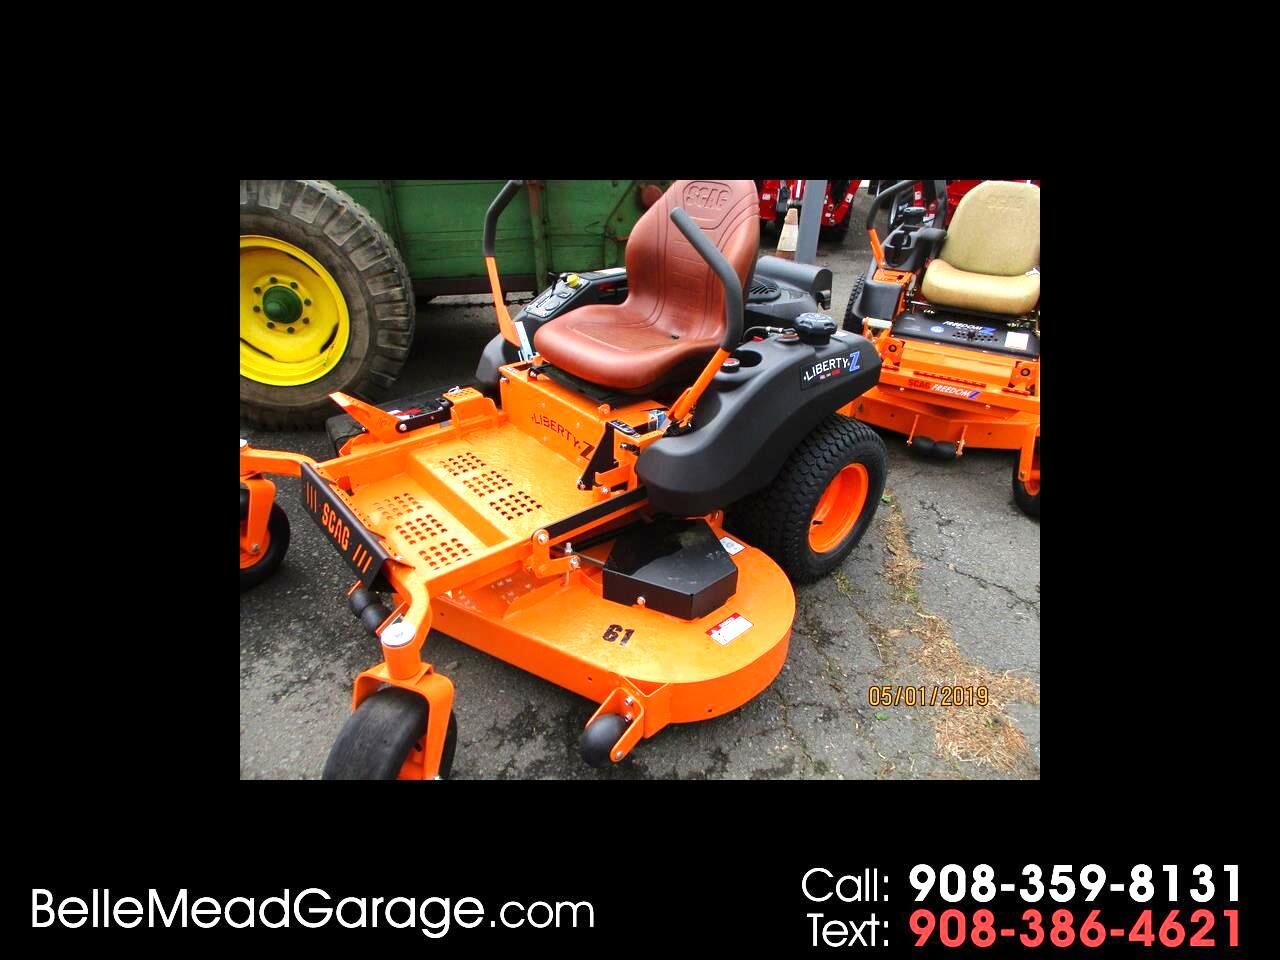 2019 SCAG Mower LIBERTY Z RIDER WITH 61